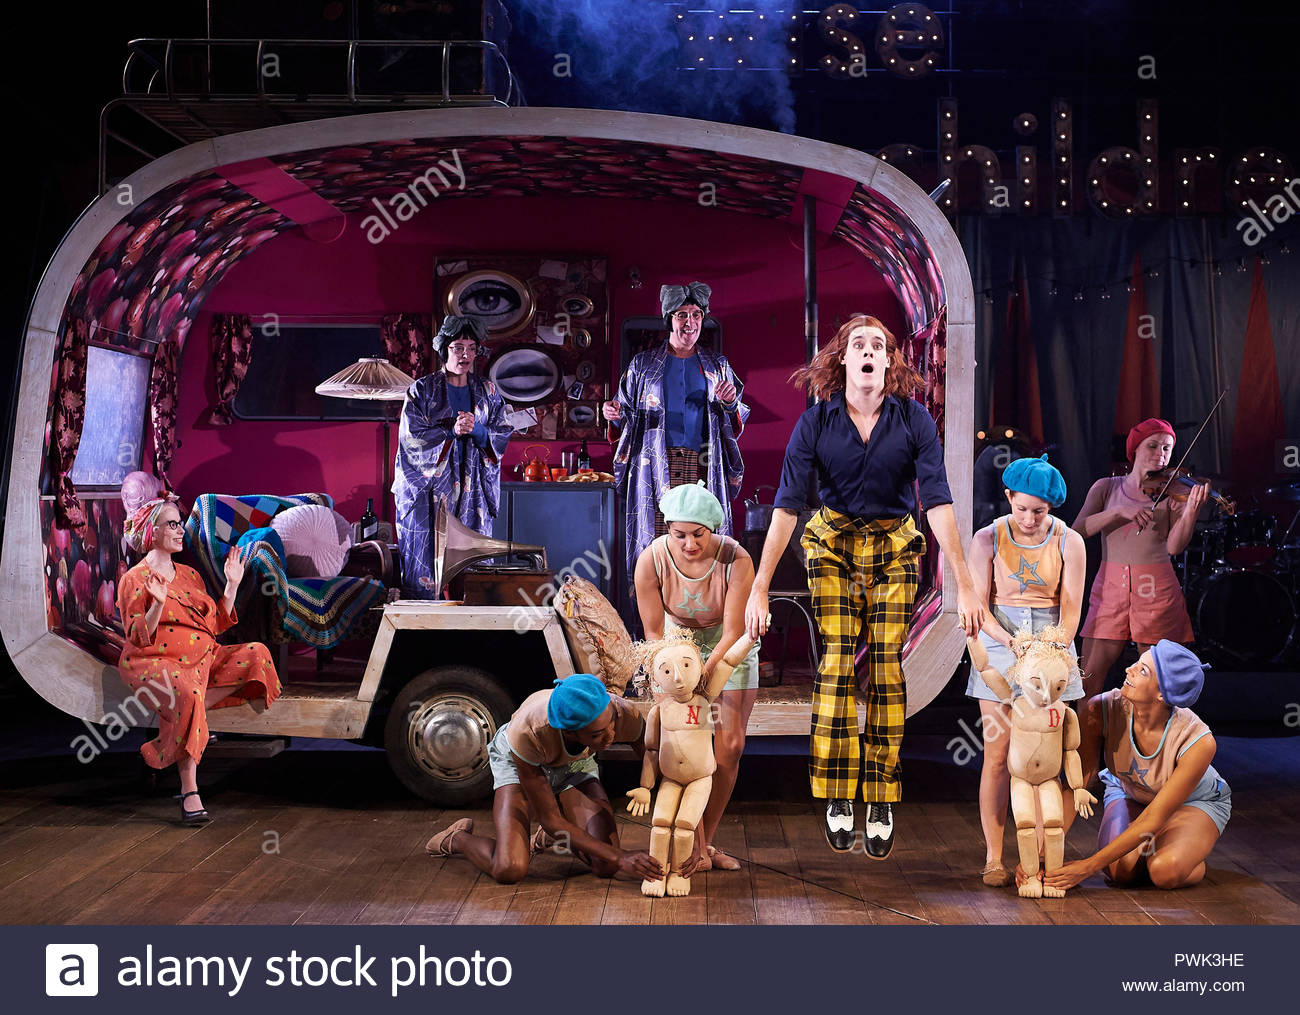 London, UK. 15th October, 2018. Wise Children by Angela Carter, adapted and directed by Emma Rice. With Sam Archer as Young Peregrine [yellow and black trousers].Opens at The Old Vic Theatre on 19/10/18. CREDIT Geraint Lewis EDITORIAL USE ONLY Credit: Geraint Lewis/Alamy Live News - Stock Image